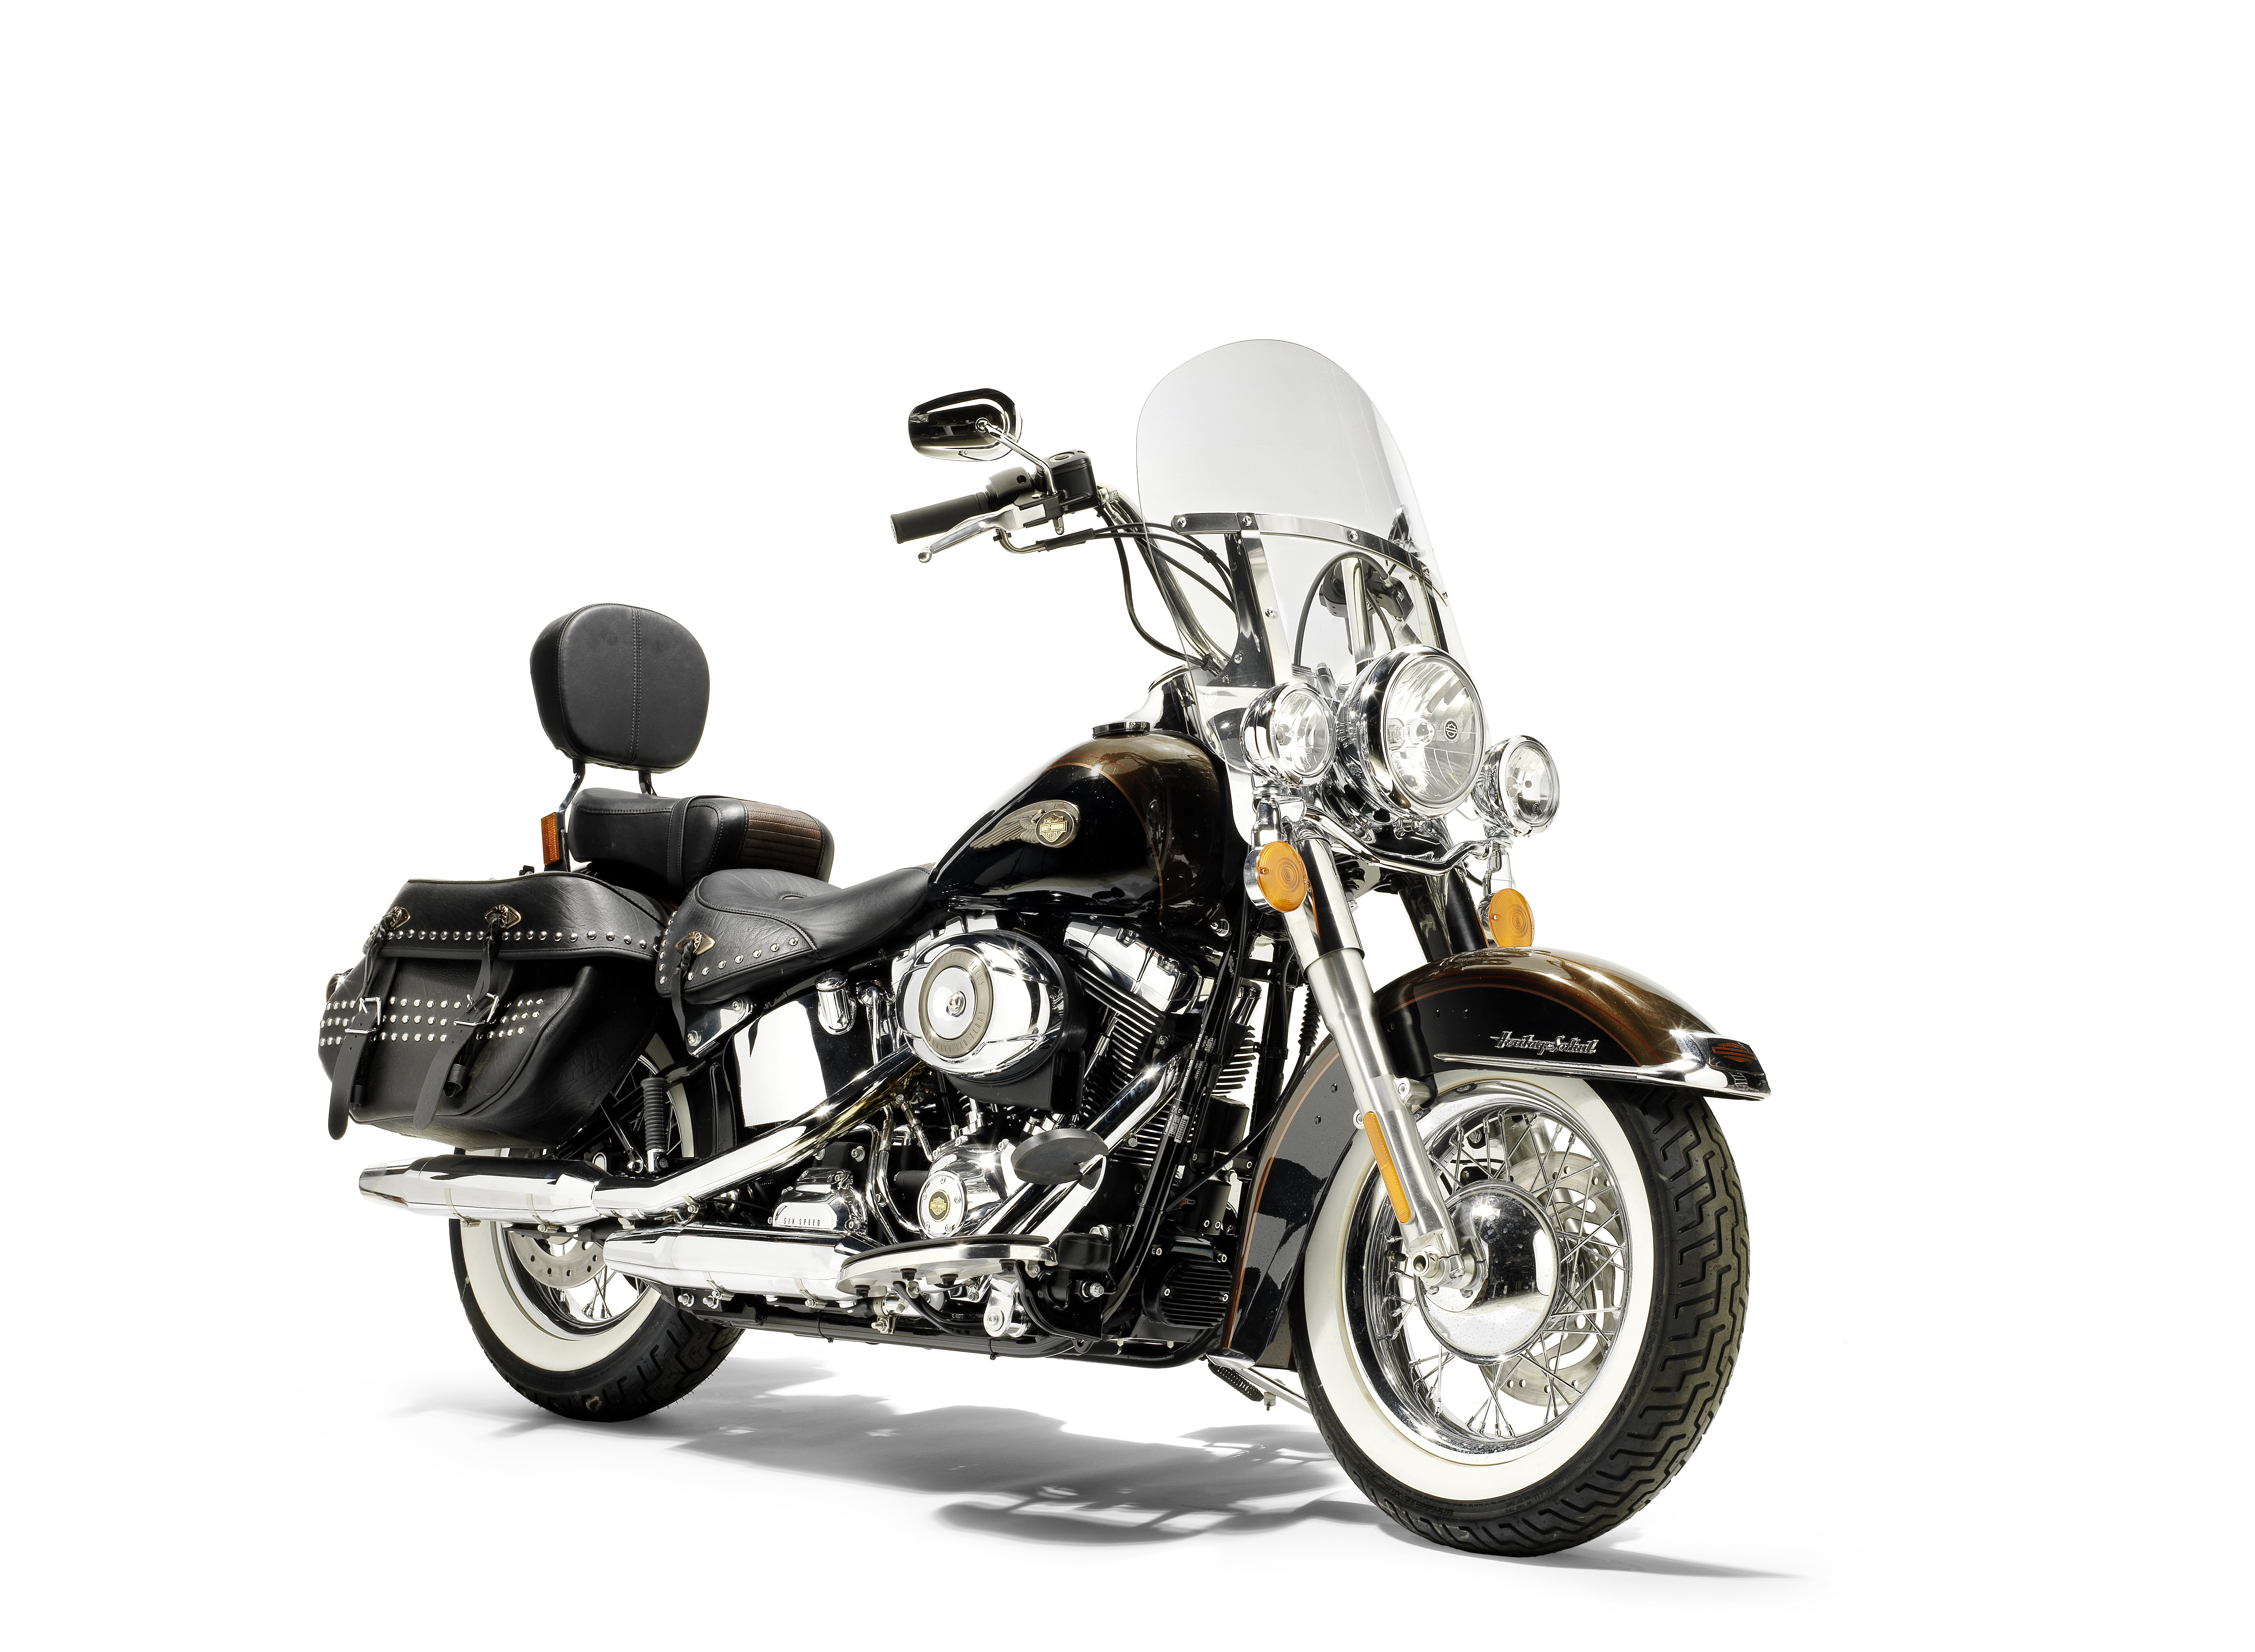 Motorcycle Com Pope Benedict Xvi Harley Davidson To Be Sold For Charity At Bonham Msmc Forums